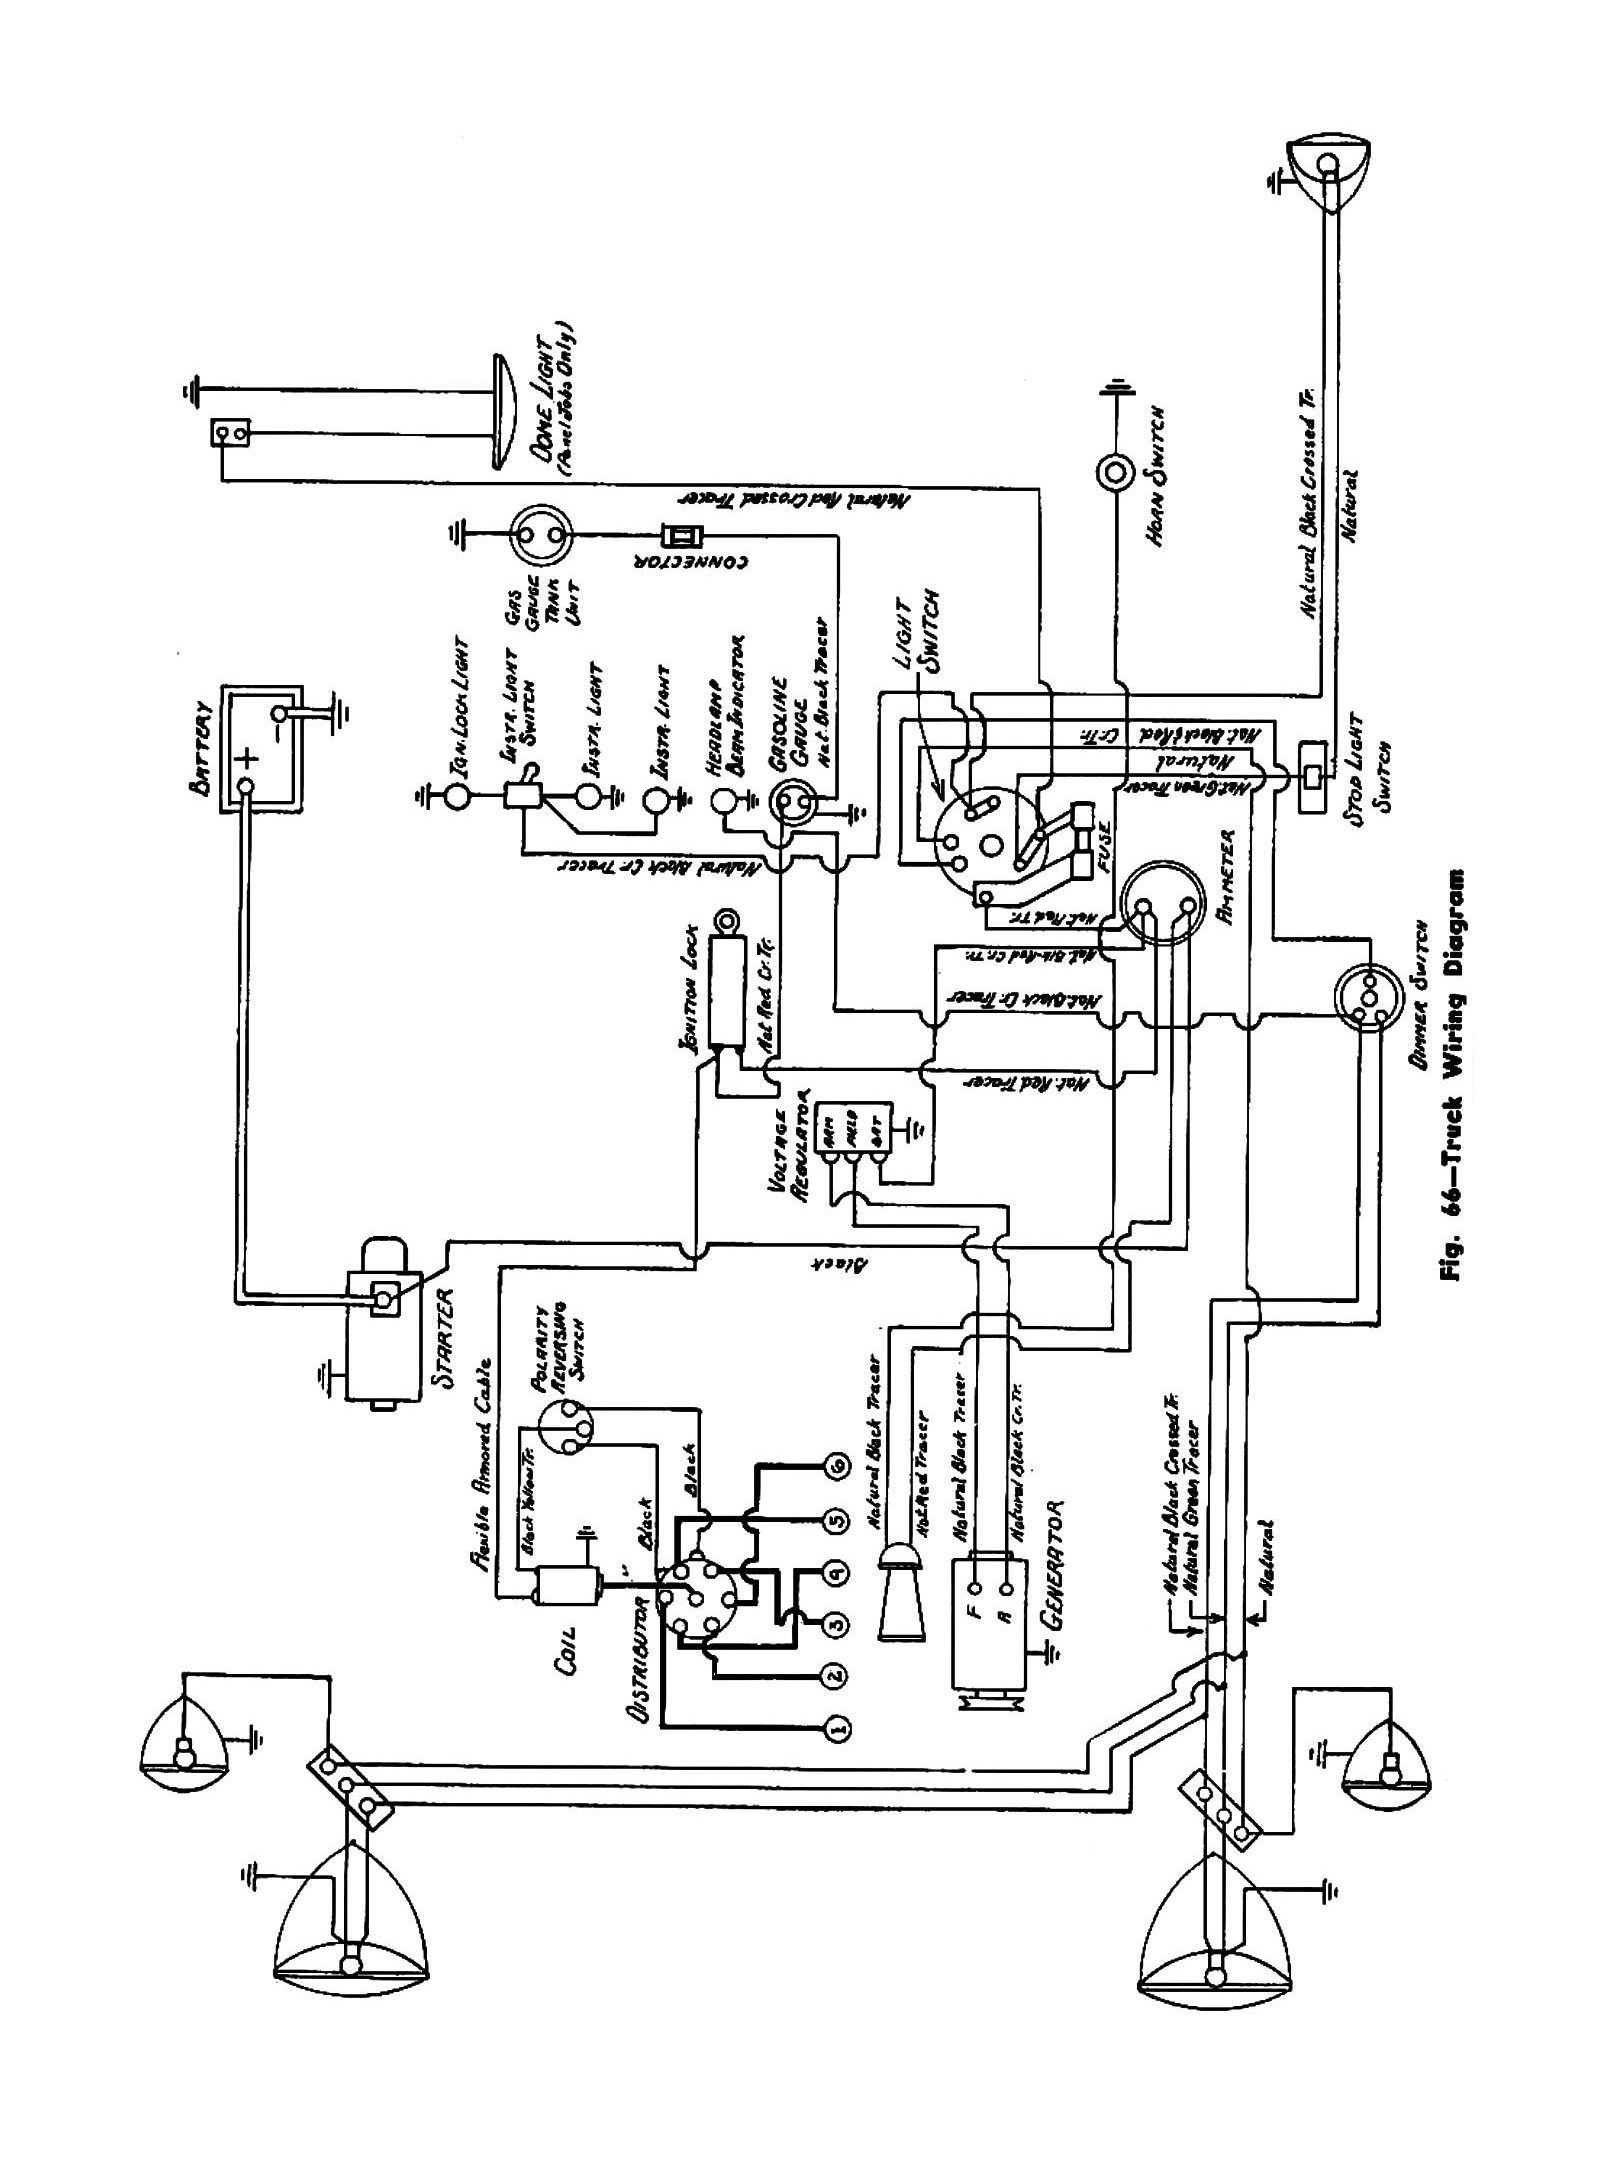 hight resolution of international truck engine diagram wiring diagram centre